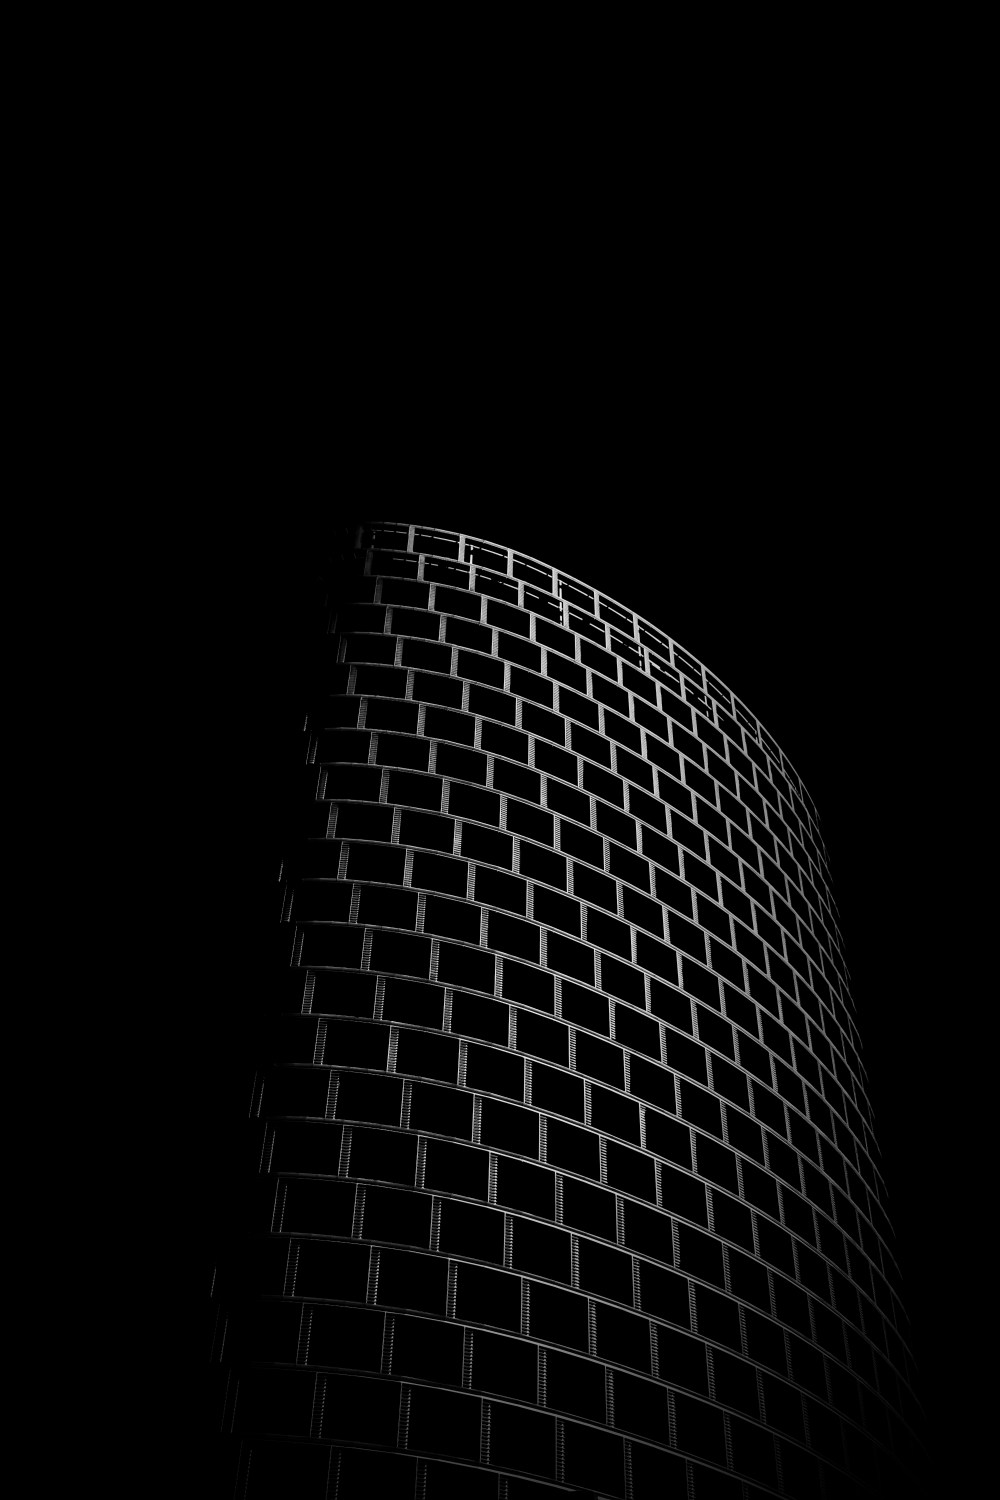 More Dynamic Wallpapers Iphone X Amoled Wallpapers Free Download 100 Best Free